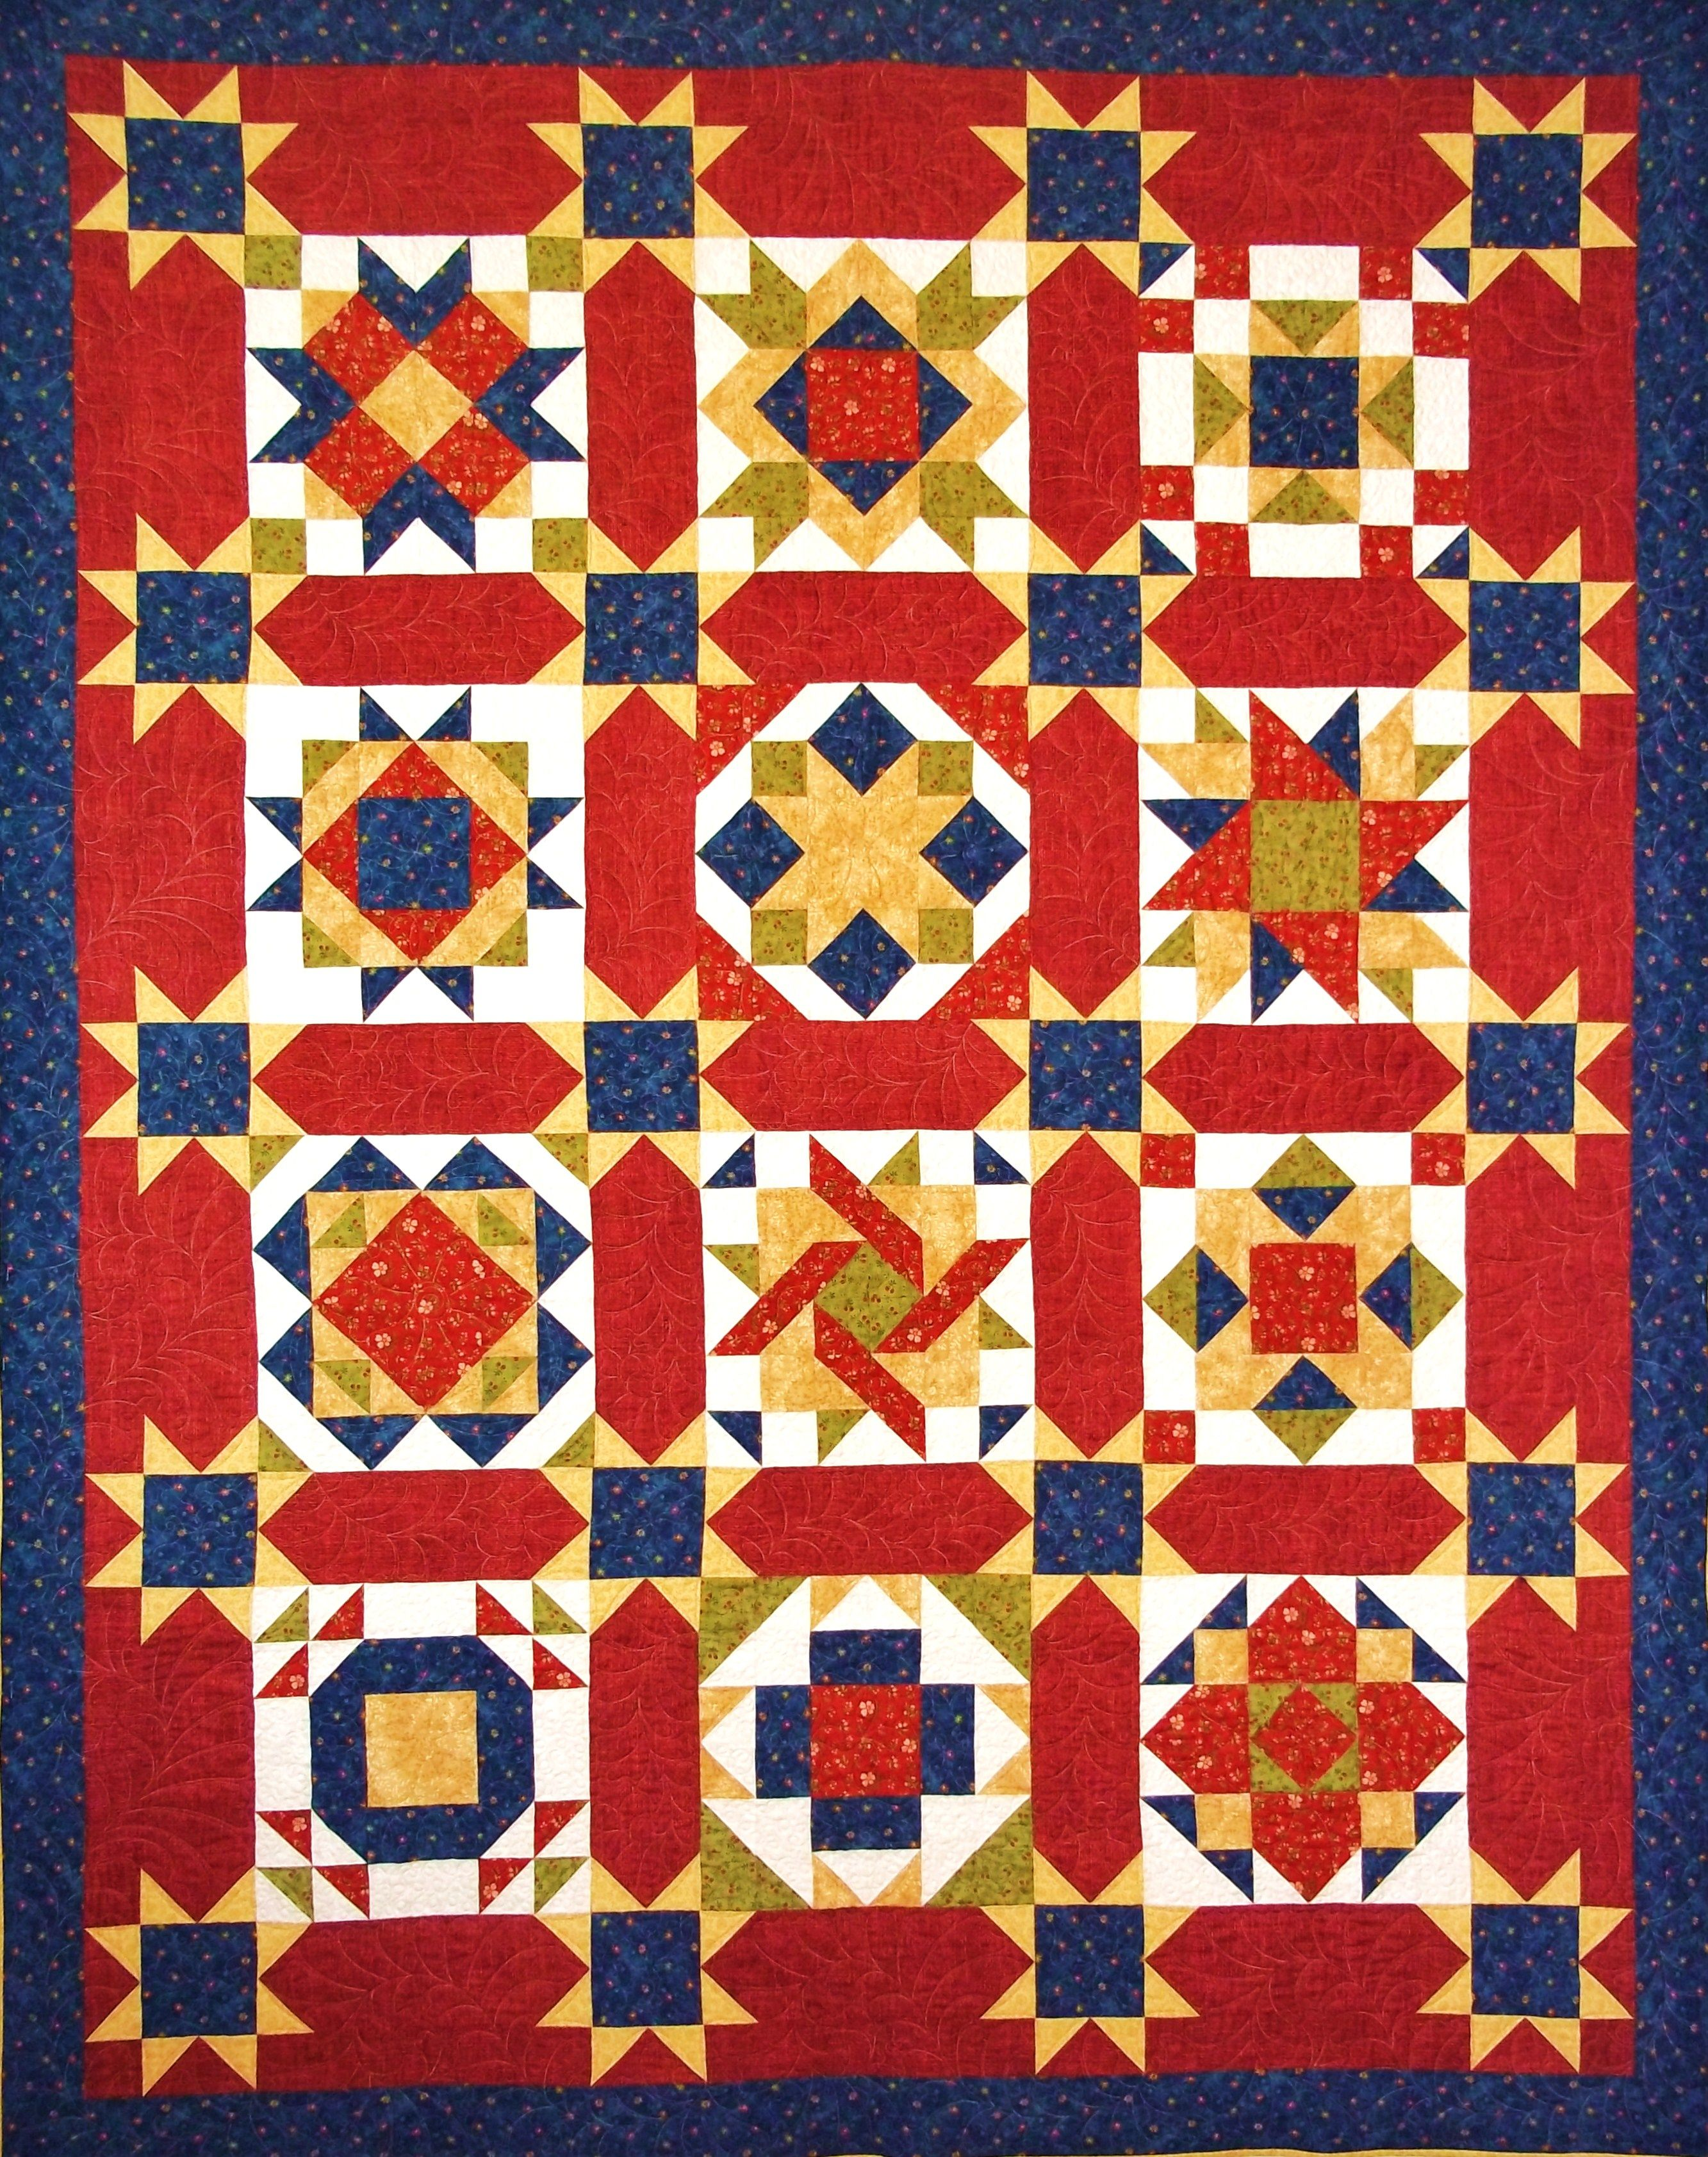 Stars Over The Homestead quilt pattern